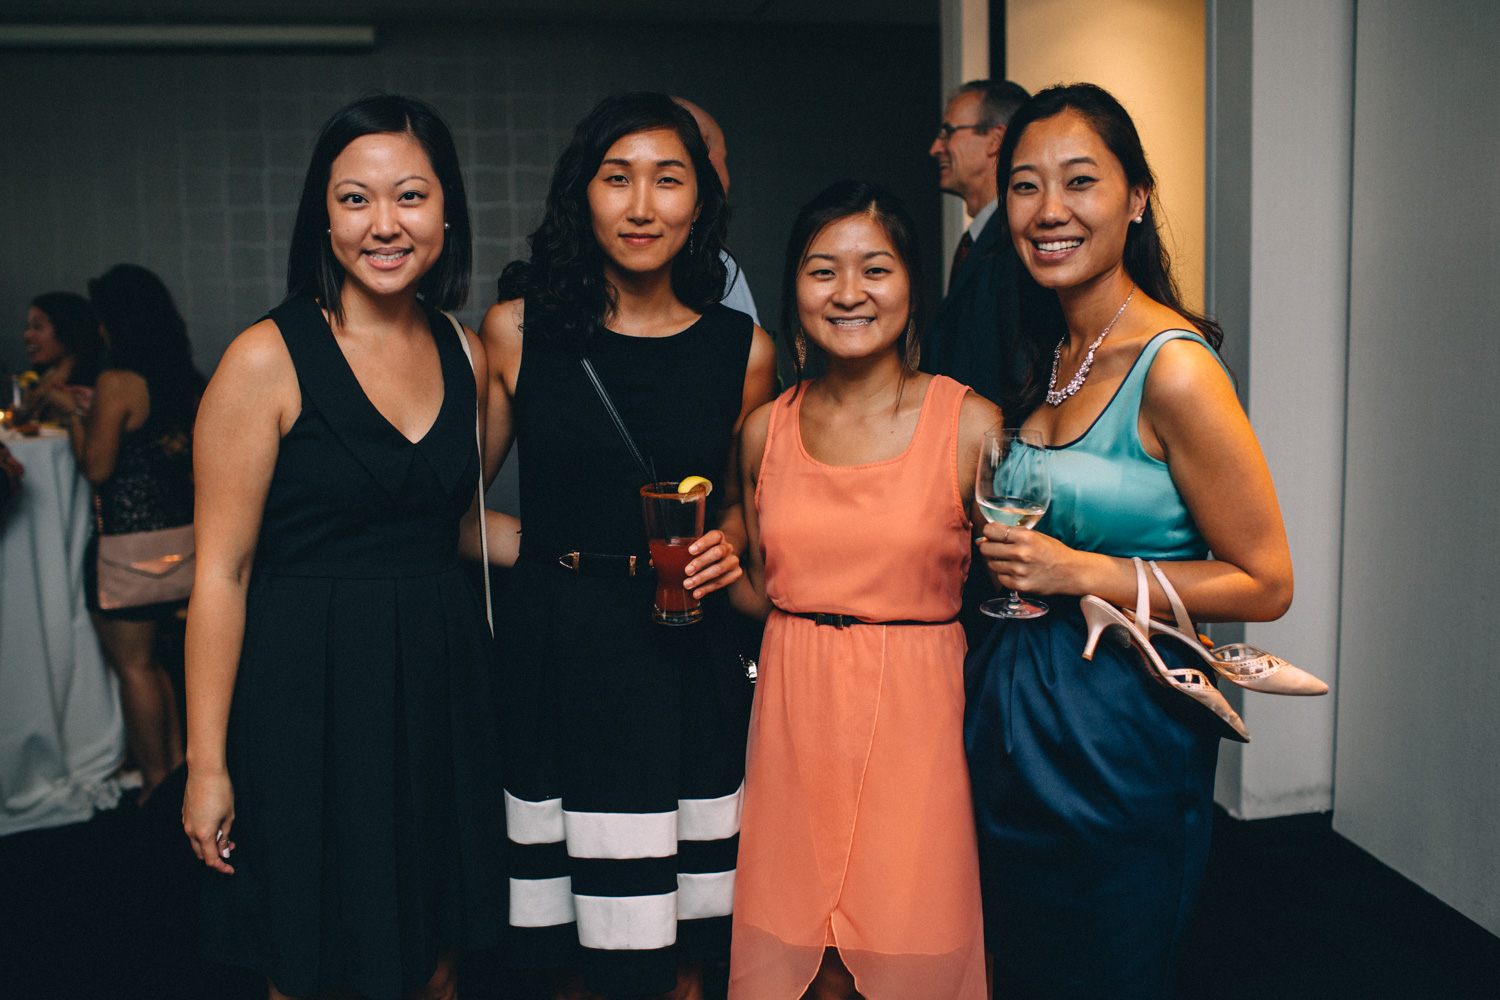 knox-college-toronto-wedding-photos-by-sam-wong-of-artanis-collective_50